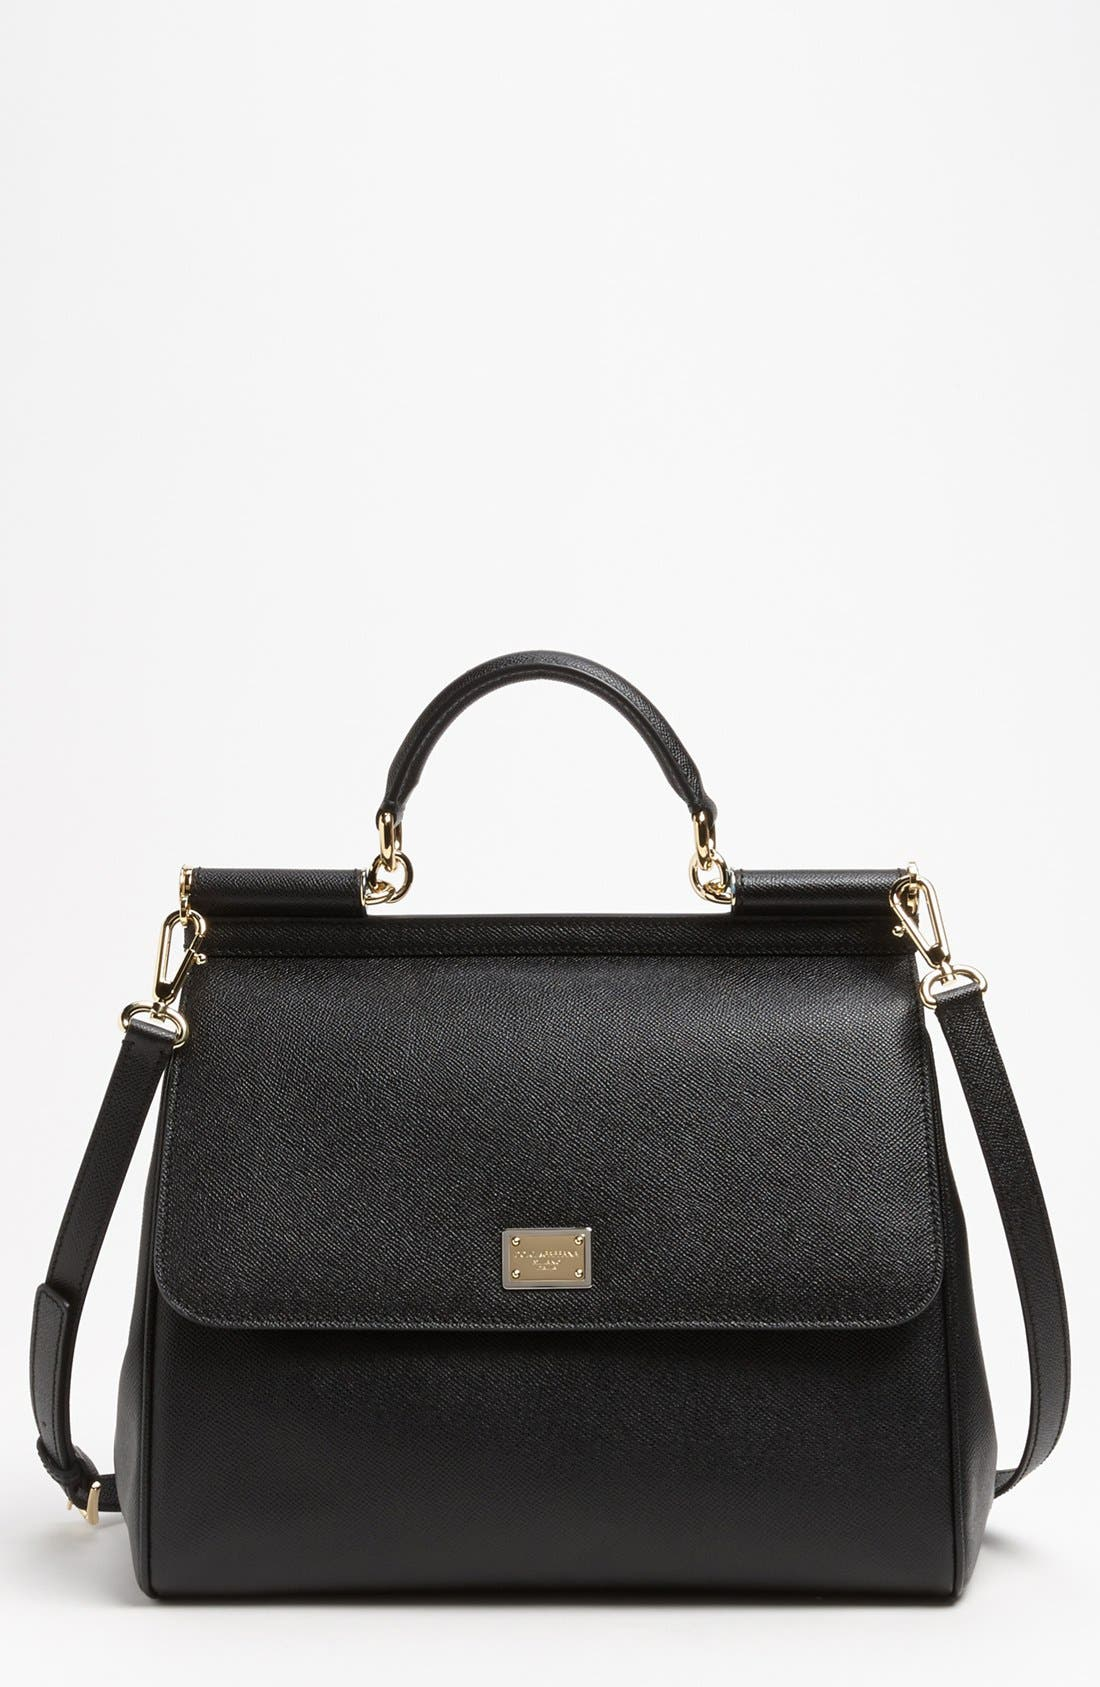 Alternate Image 1 Selected - Dolce&Gabbana 'Miss Sicily' Top Handle Leather Satchel